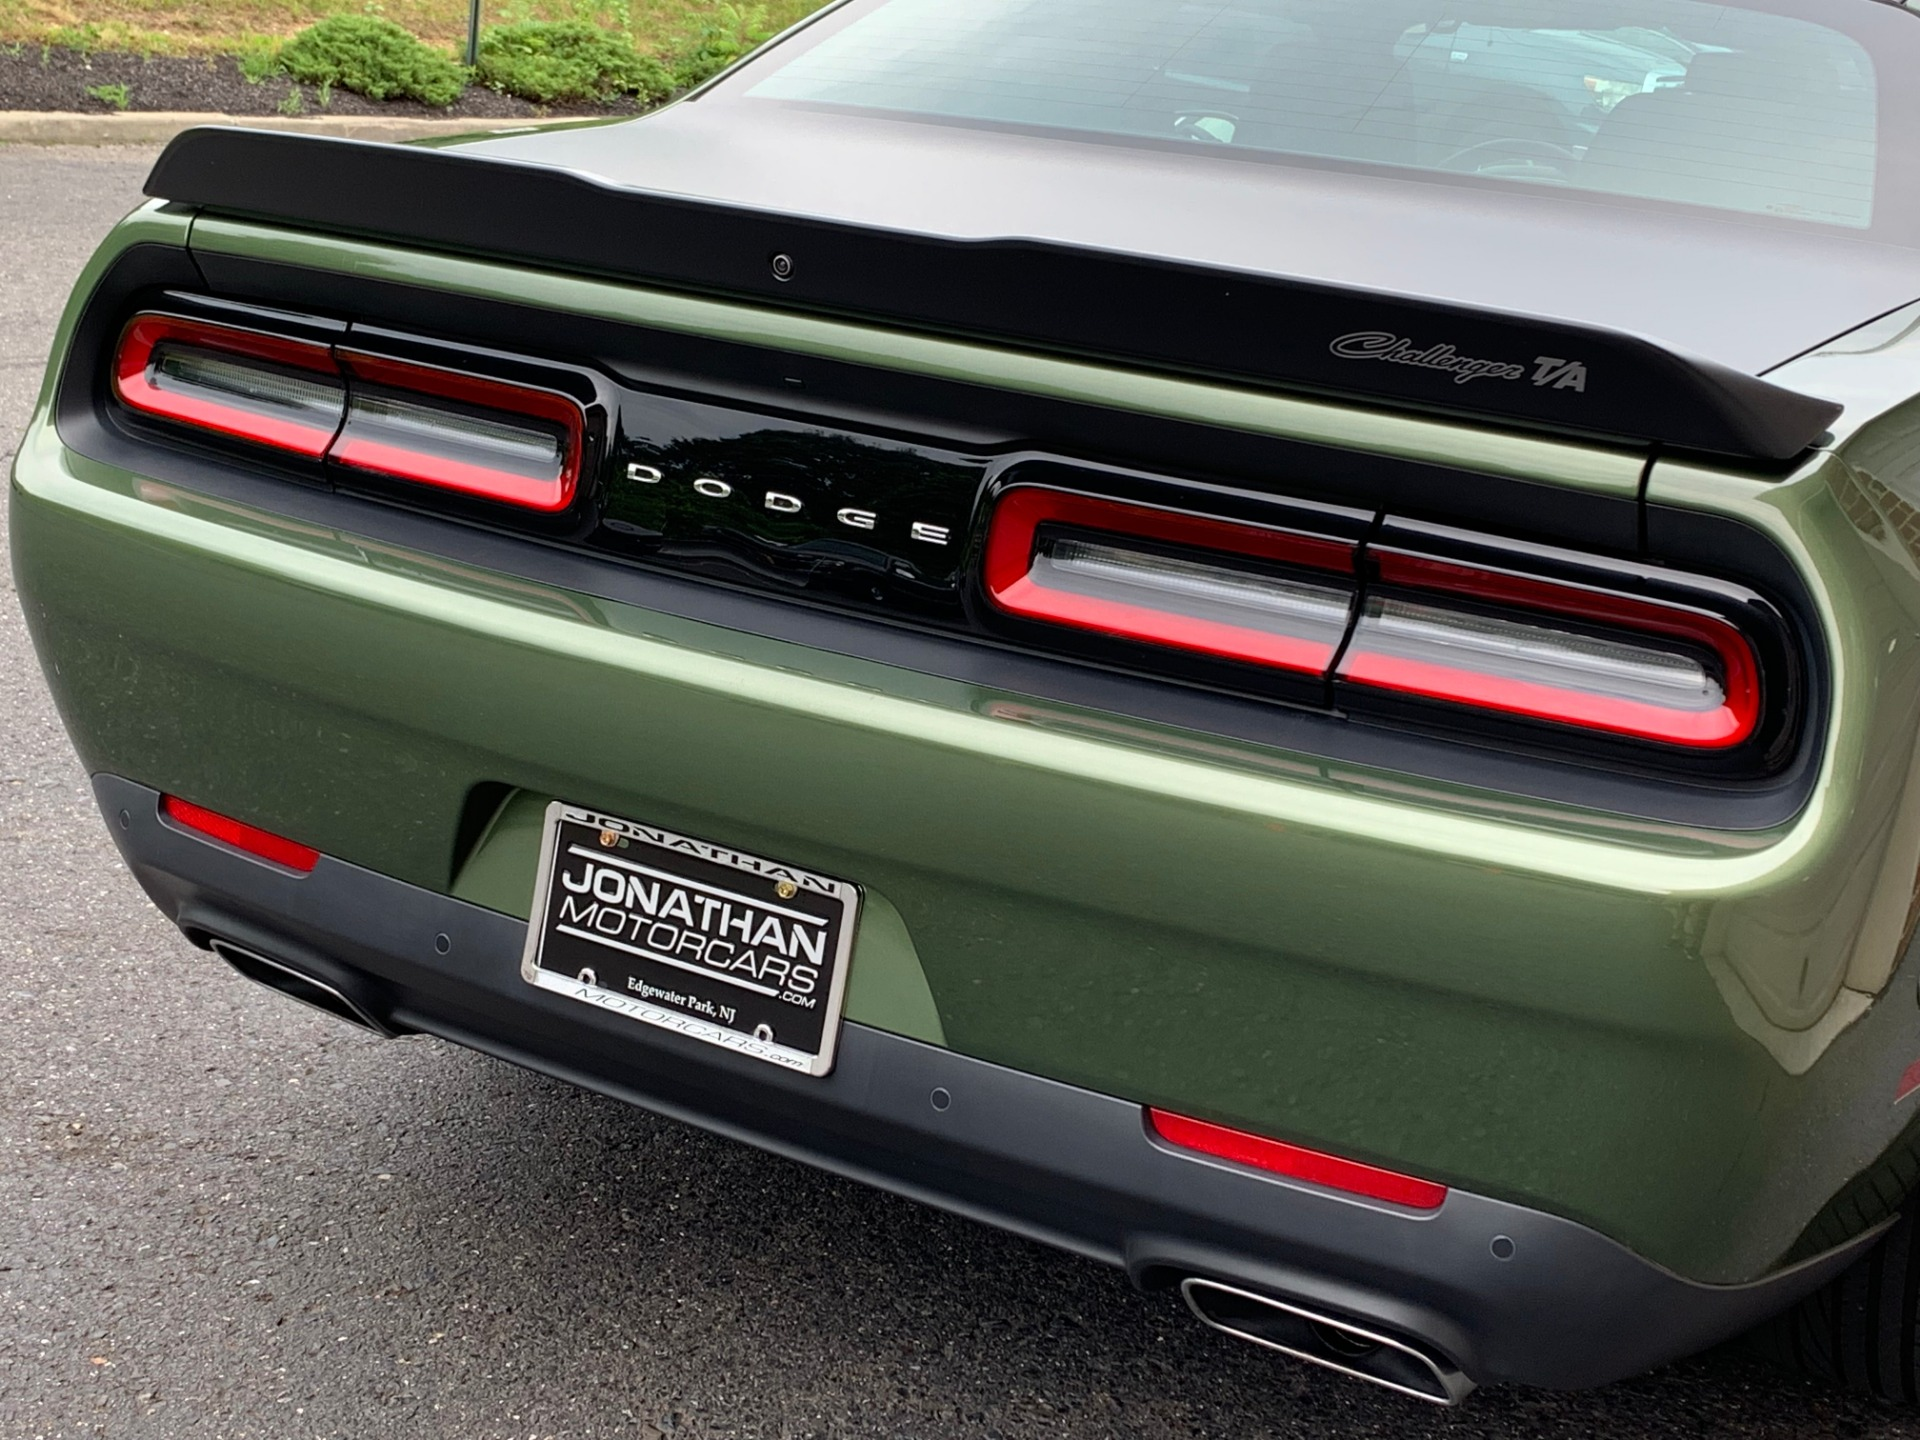 2018 Dodge Challenger T/A Stock # 171530 for sale near